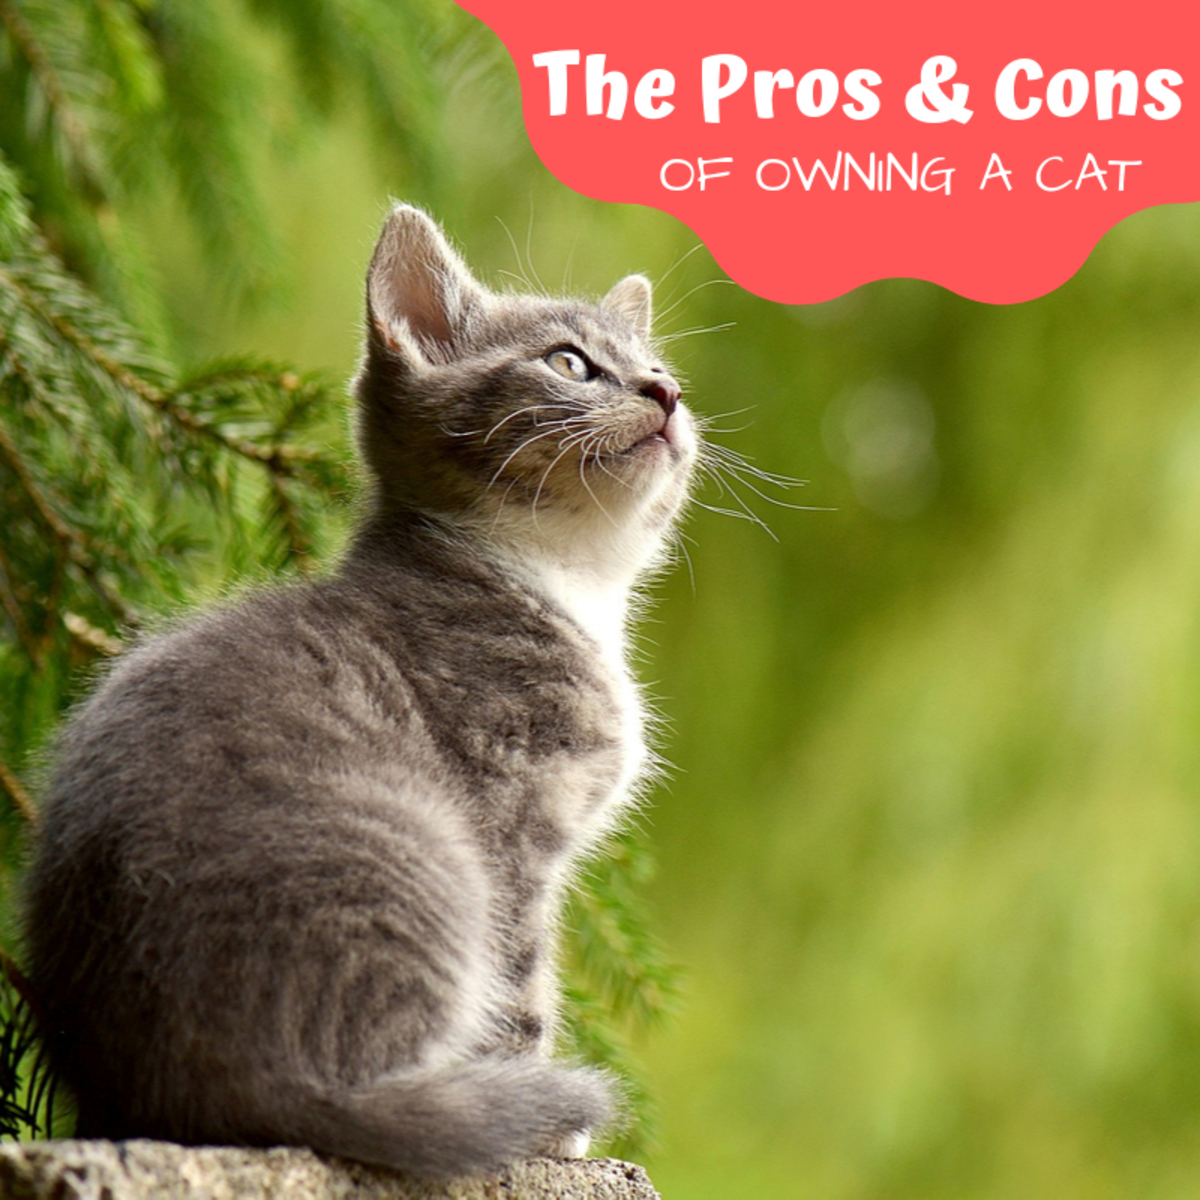 The Pros and Cons of Owning a Cat